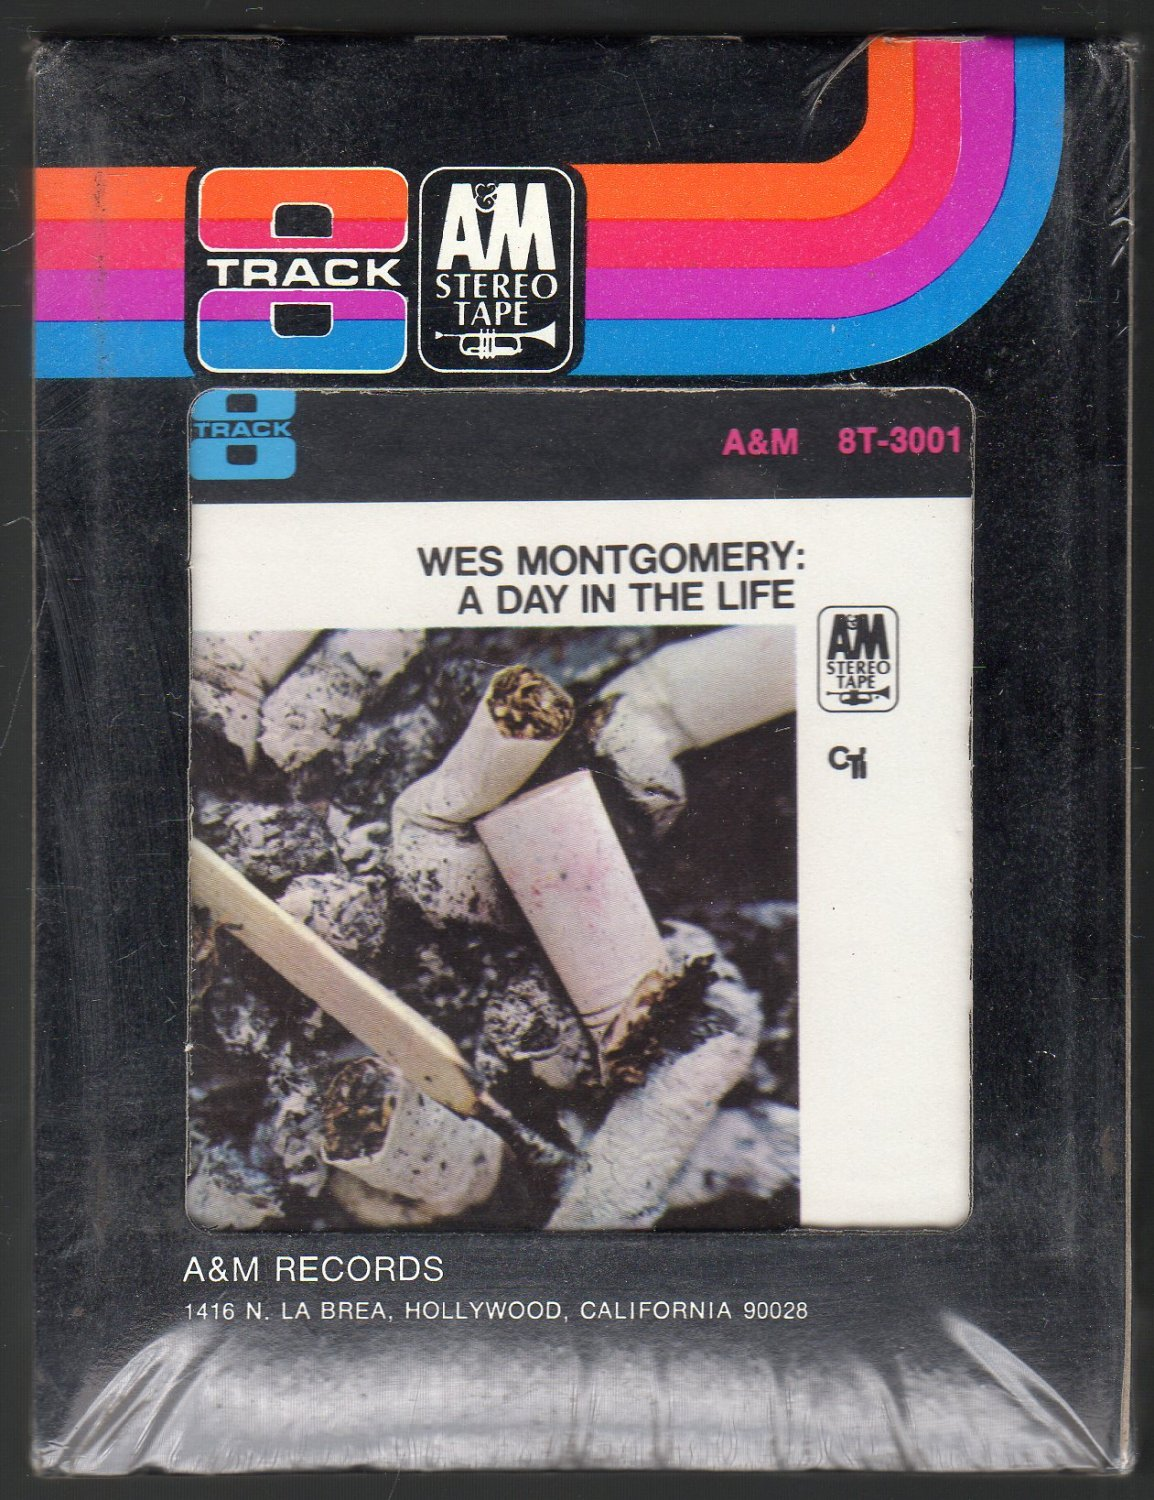 Wes Montgomery - A Day In The Life A&M Sealed 8-track tape